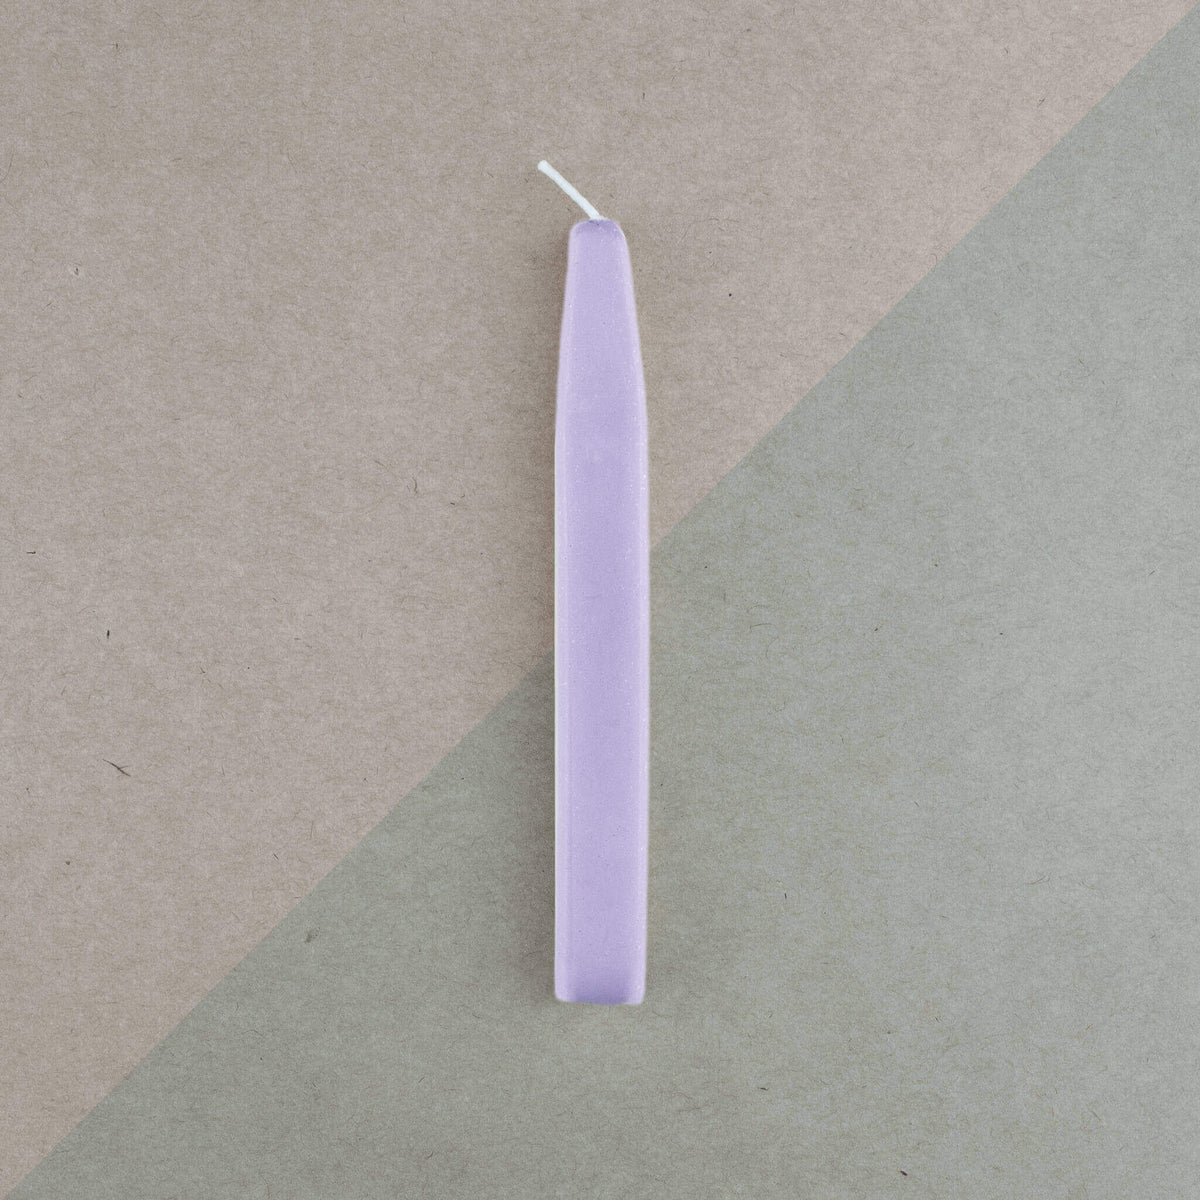 Kustom Haus Traditional Sealing Wax Stick with Wick - Lavender